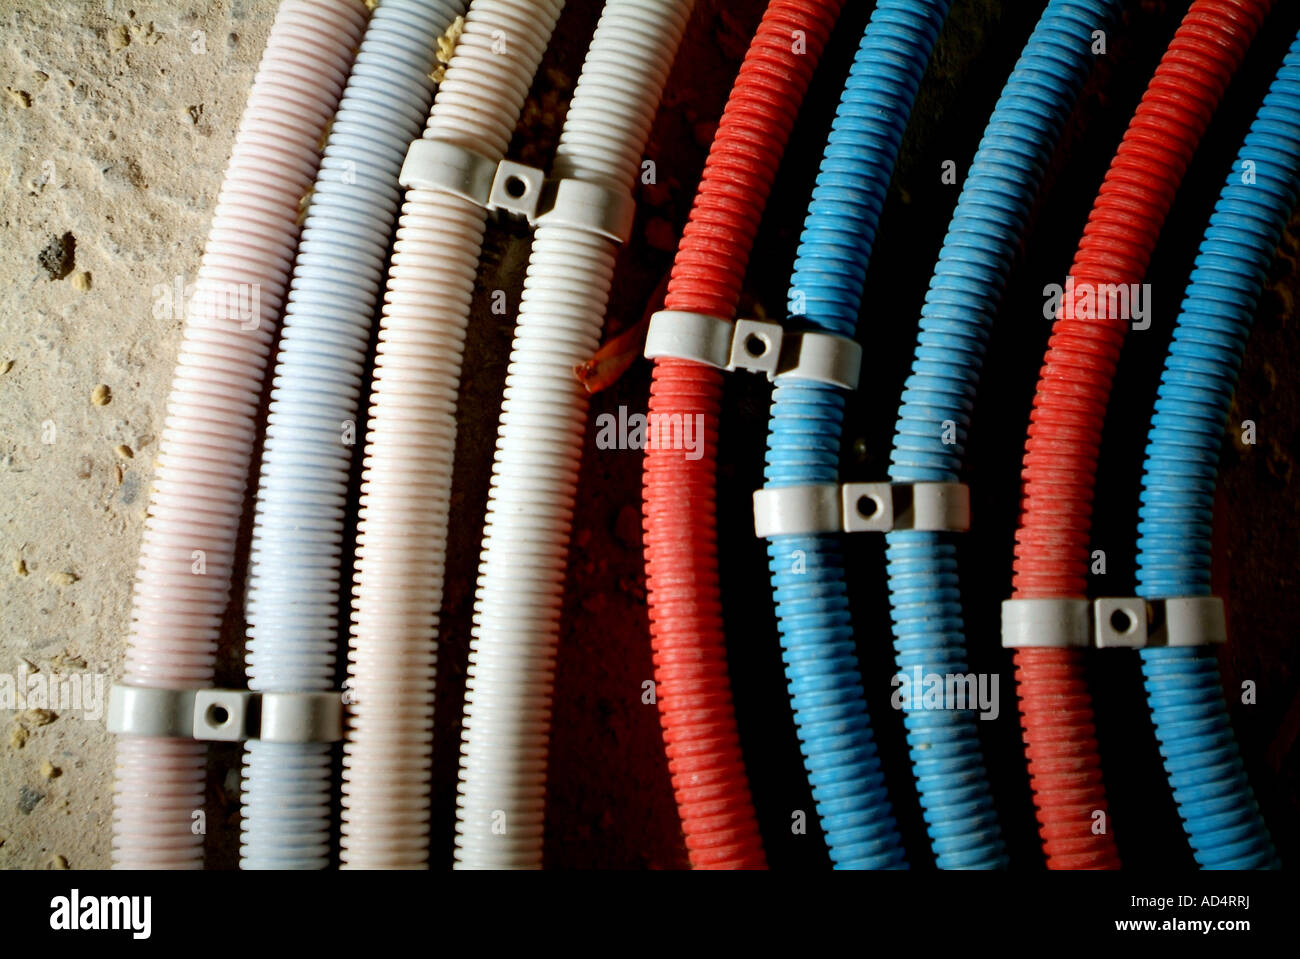 Cables Cable Wire Wires Stockfotos & Cables Cable Wire Wires Bilder ...